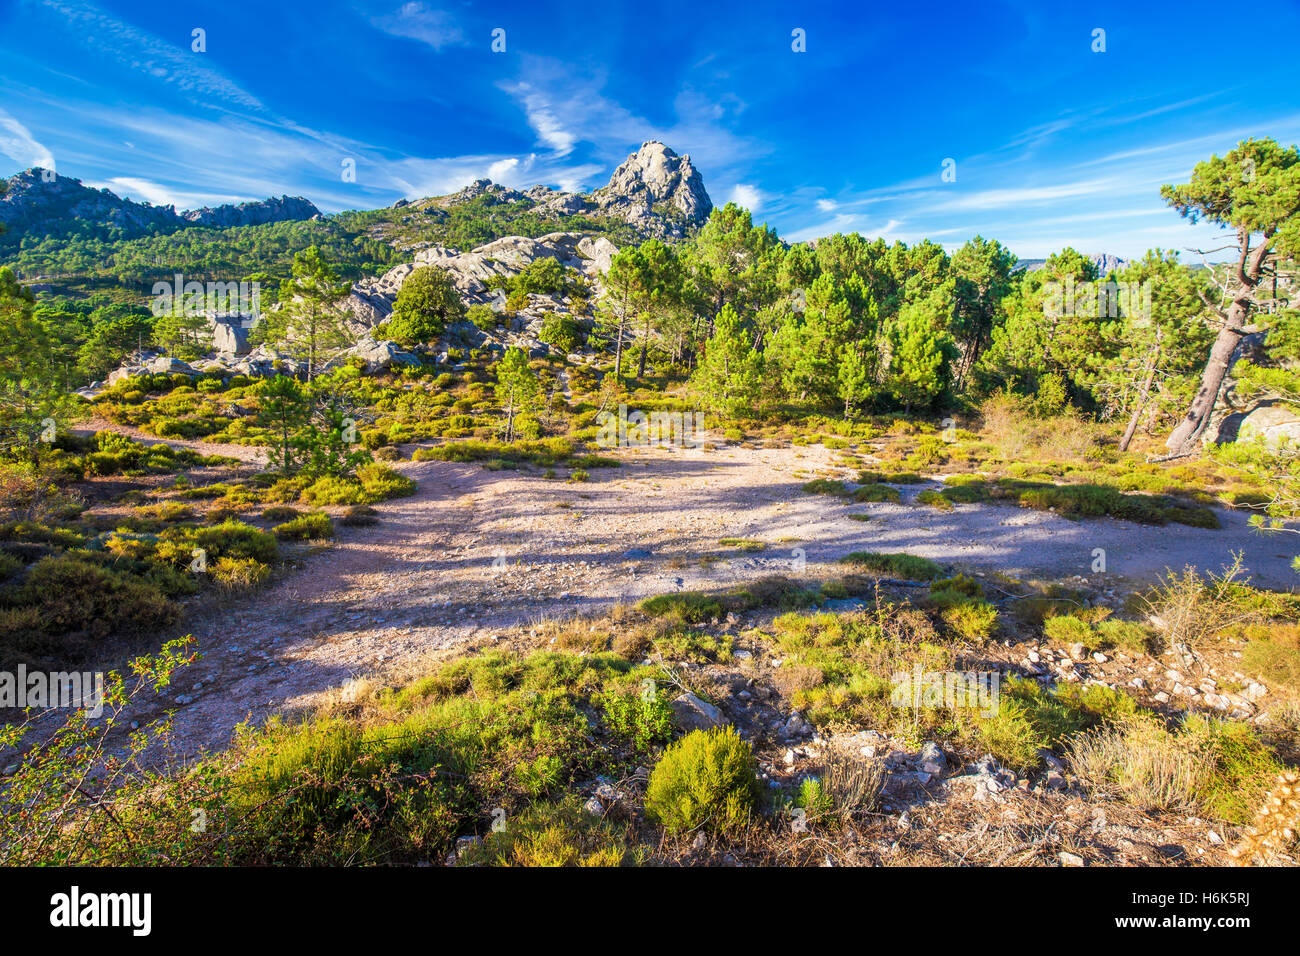 Pine trees in Col de Bavella mountains, Corsica island, France, Europe. - Stock Image